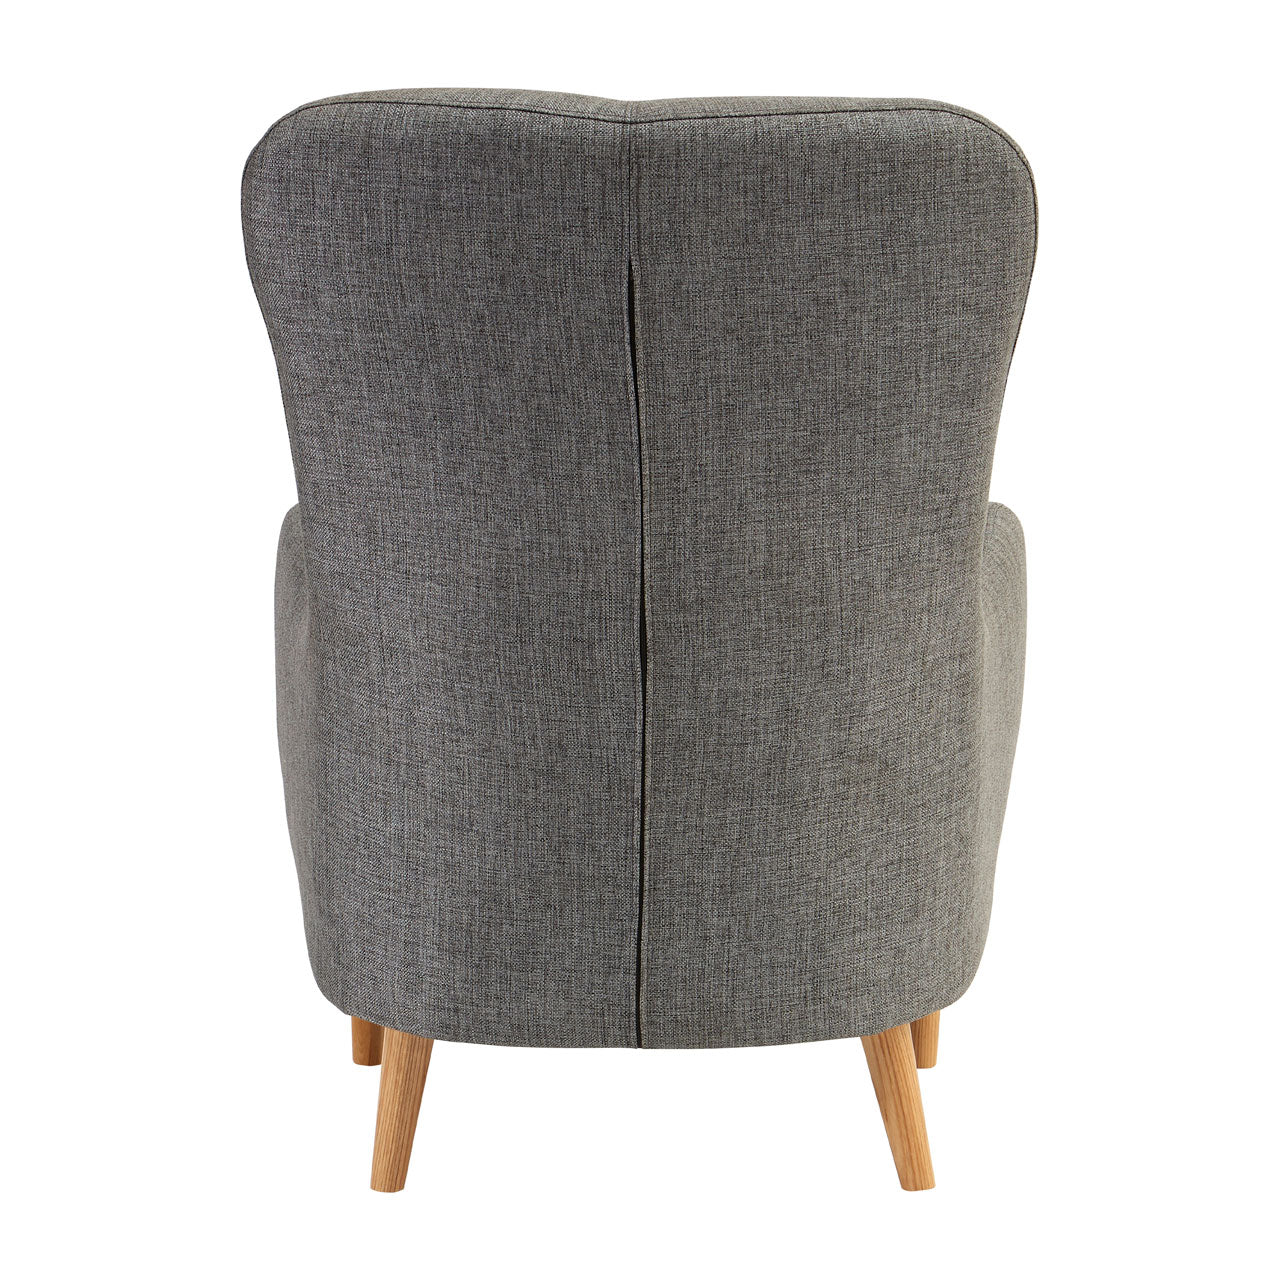 Kolding Grey Fabric Chair